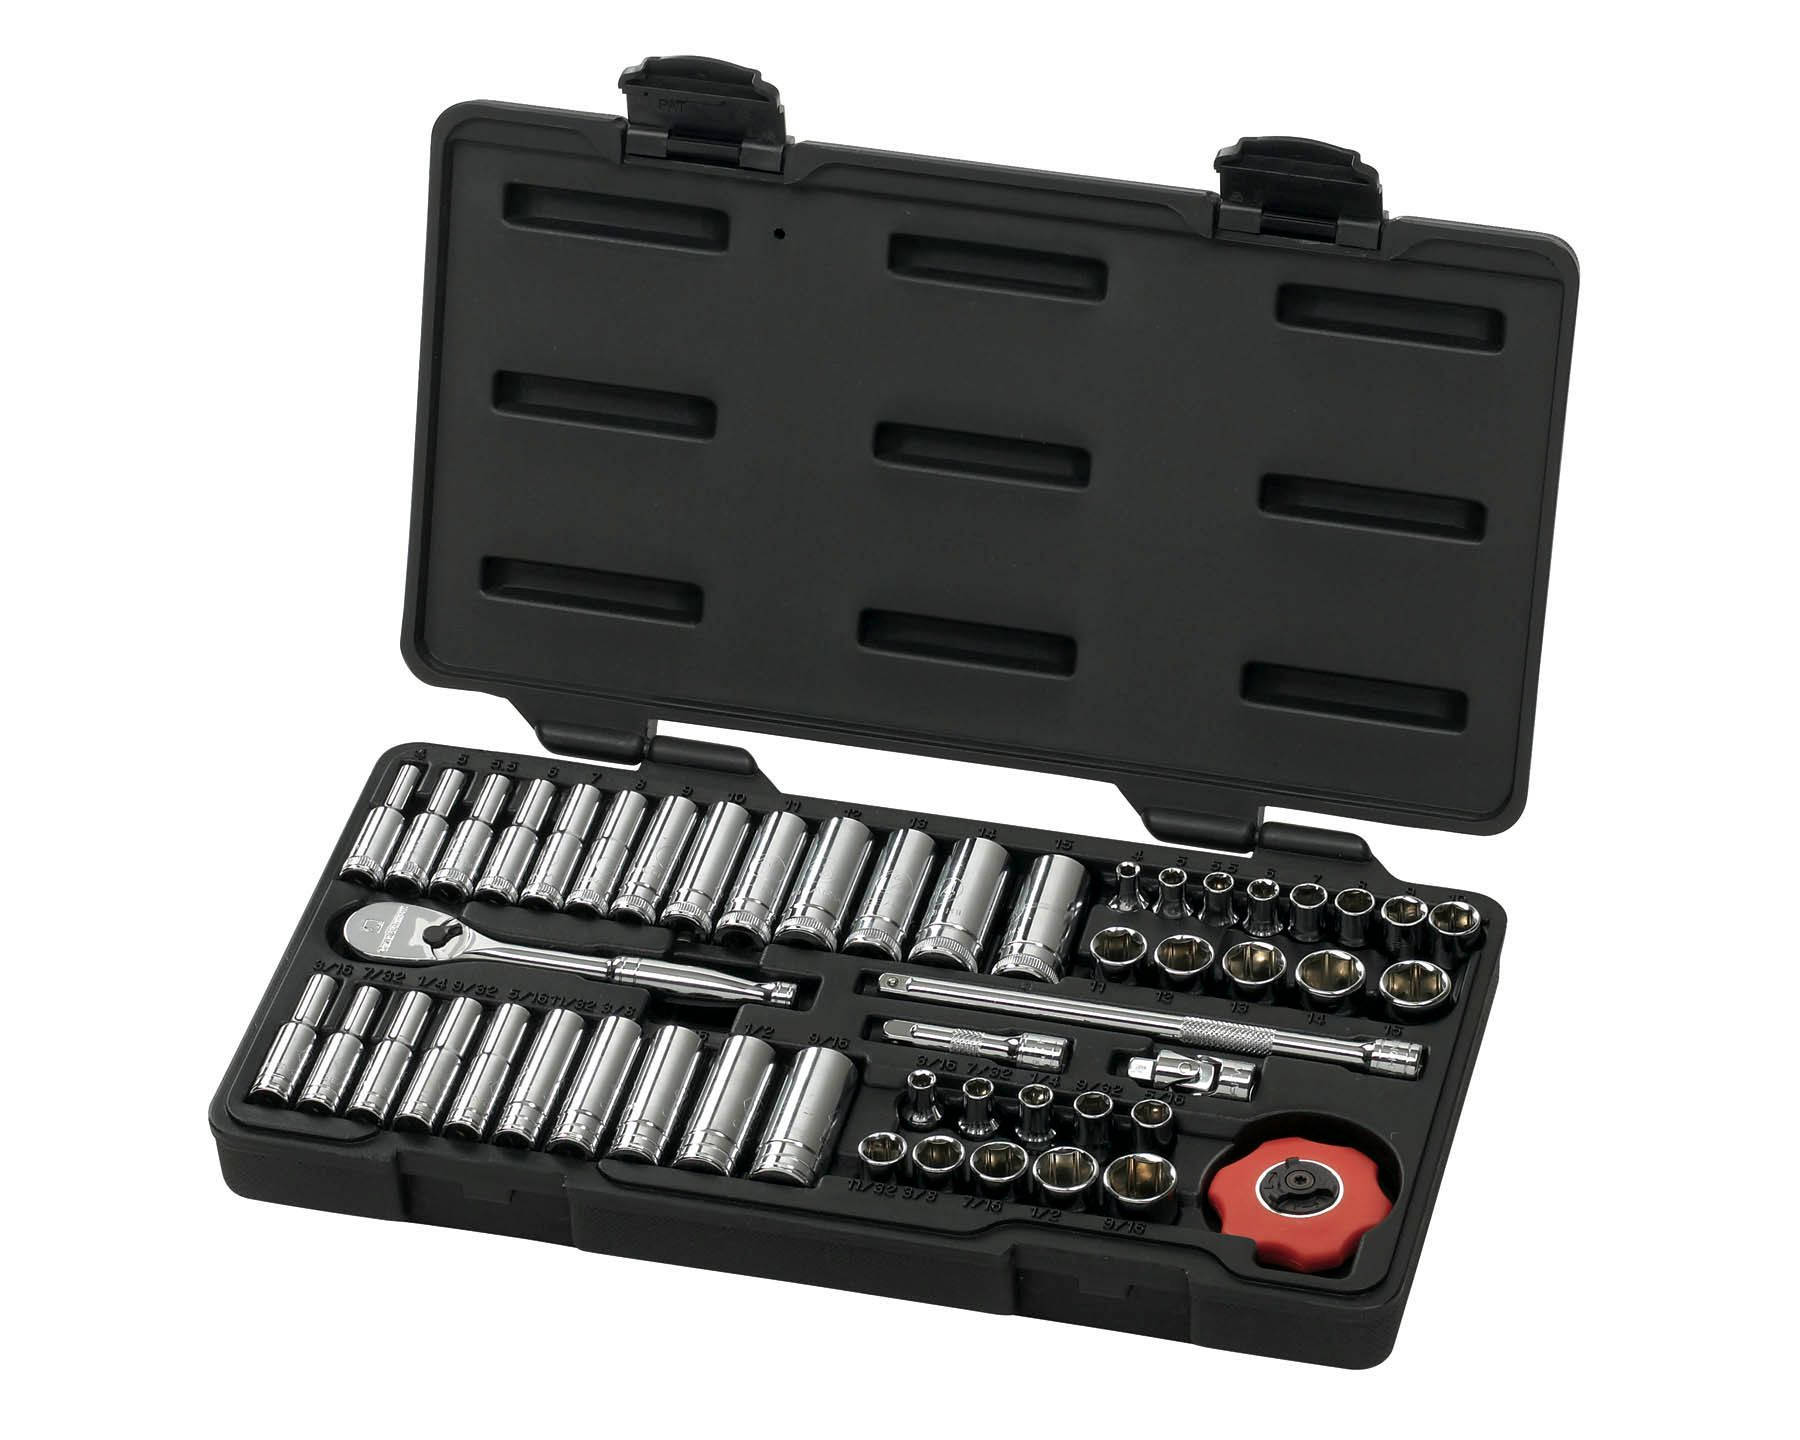 51 Pc. 6 Pt. SAE/Metric Socket Set 1/4